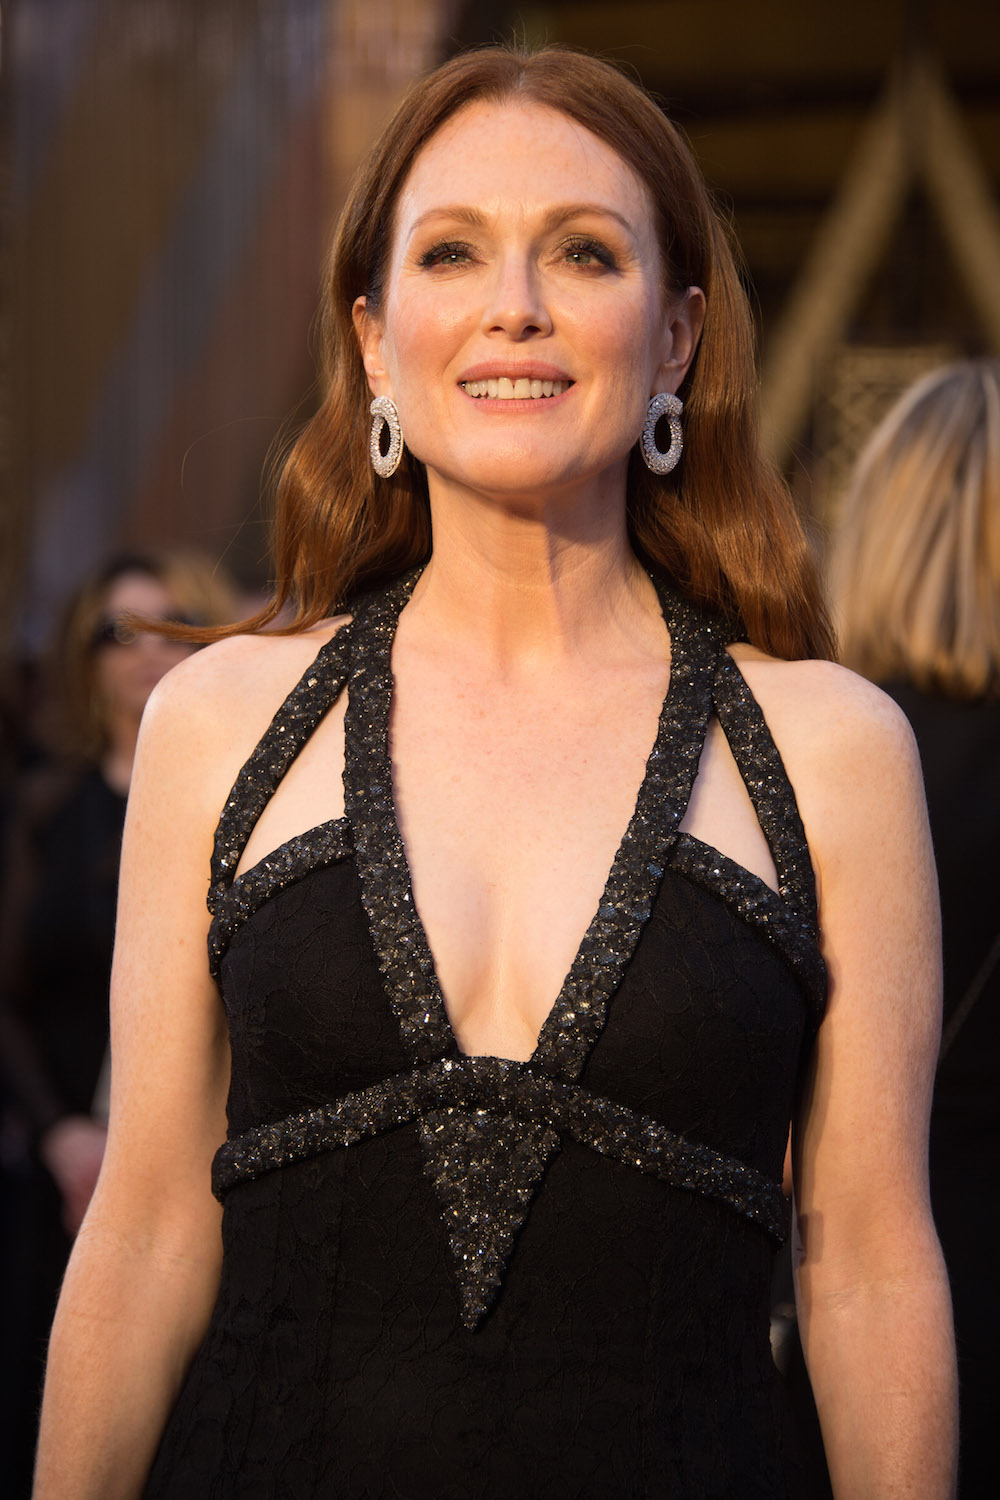 Julianne Moore Kleid dress oscars 2016 Chanel designer modepilot